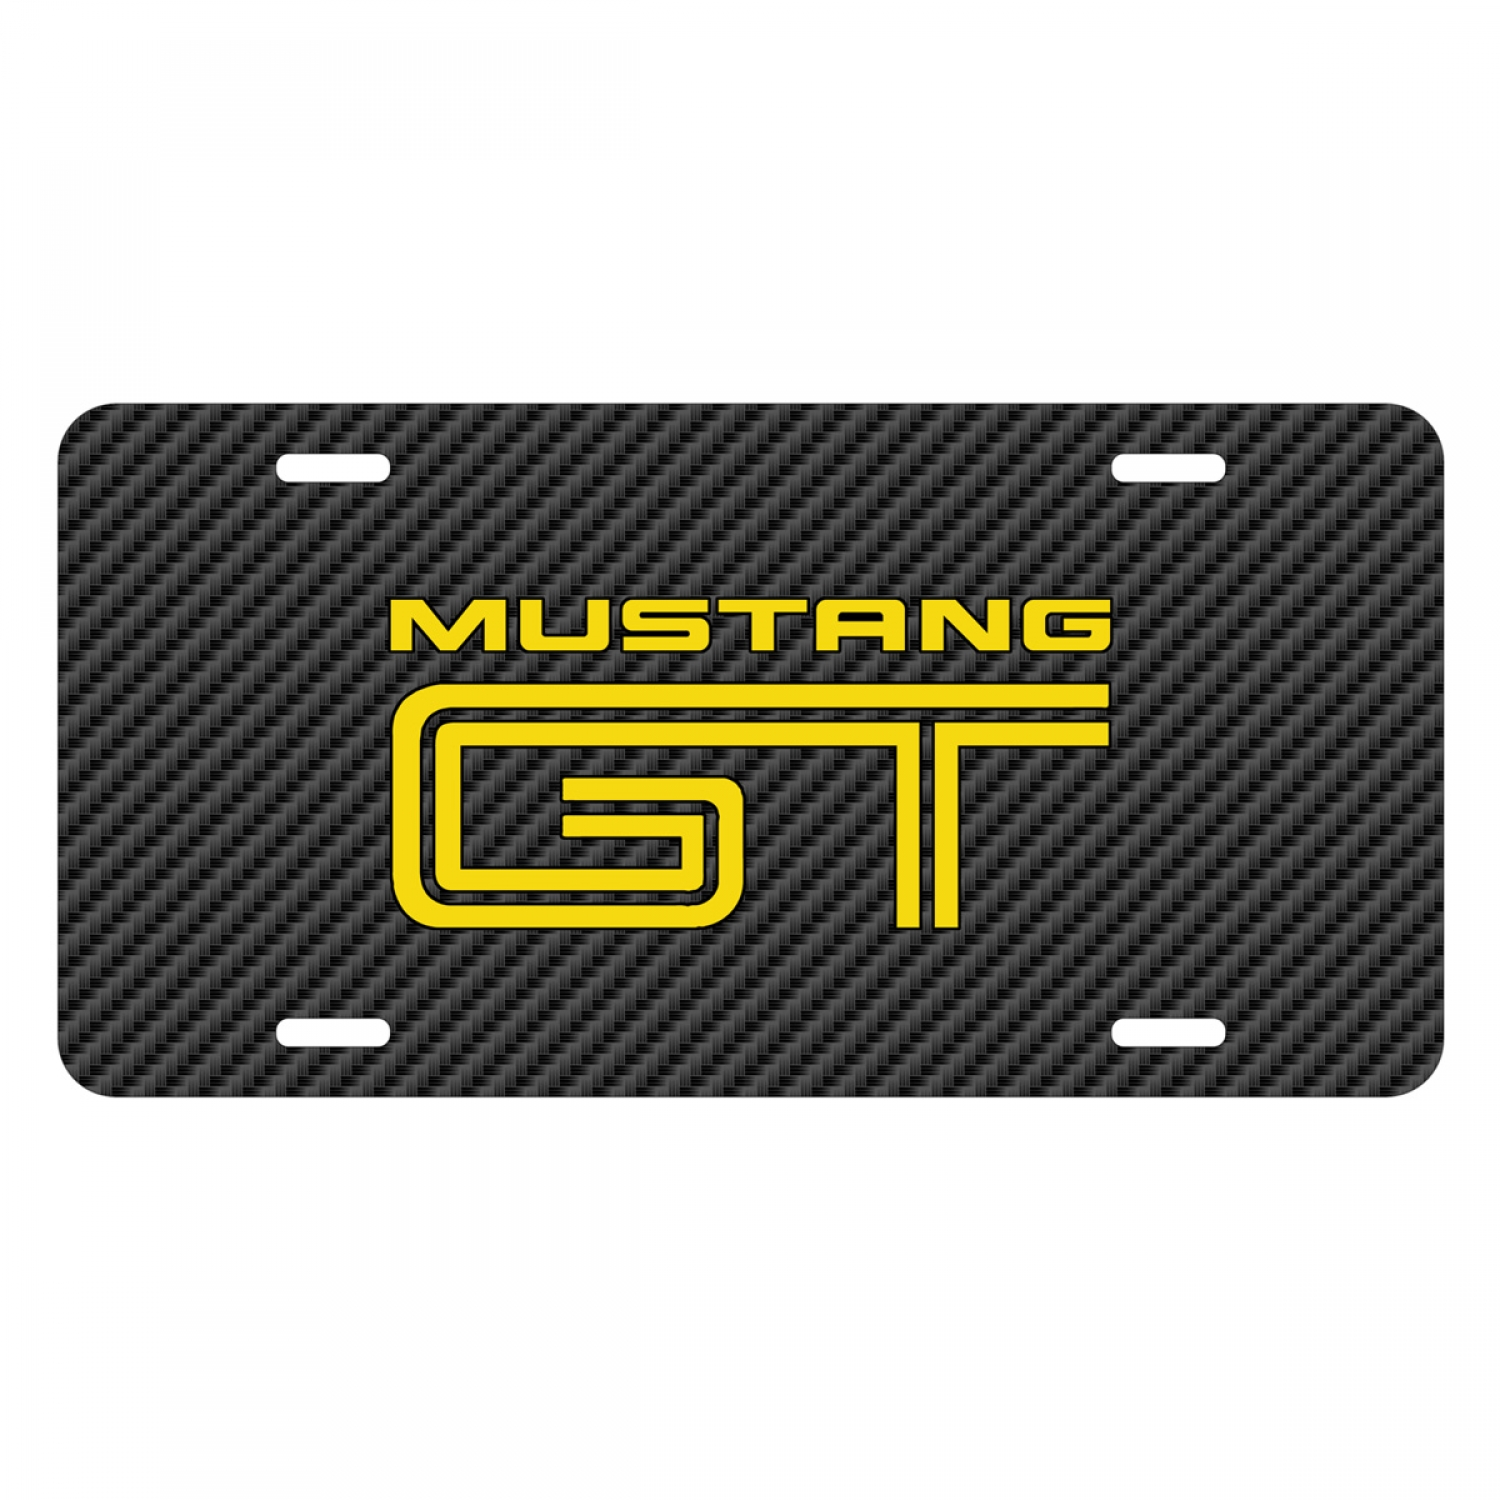 Ford Mustang GT in Yellow Black Carbon Fiber Texture Graphic UV Metal License Plate